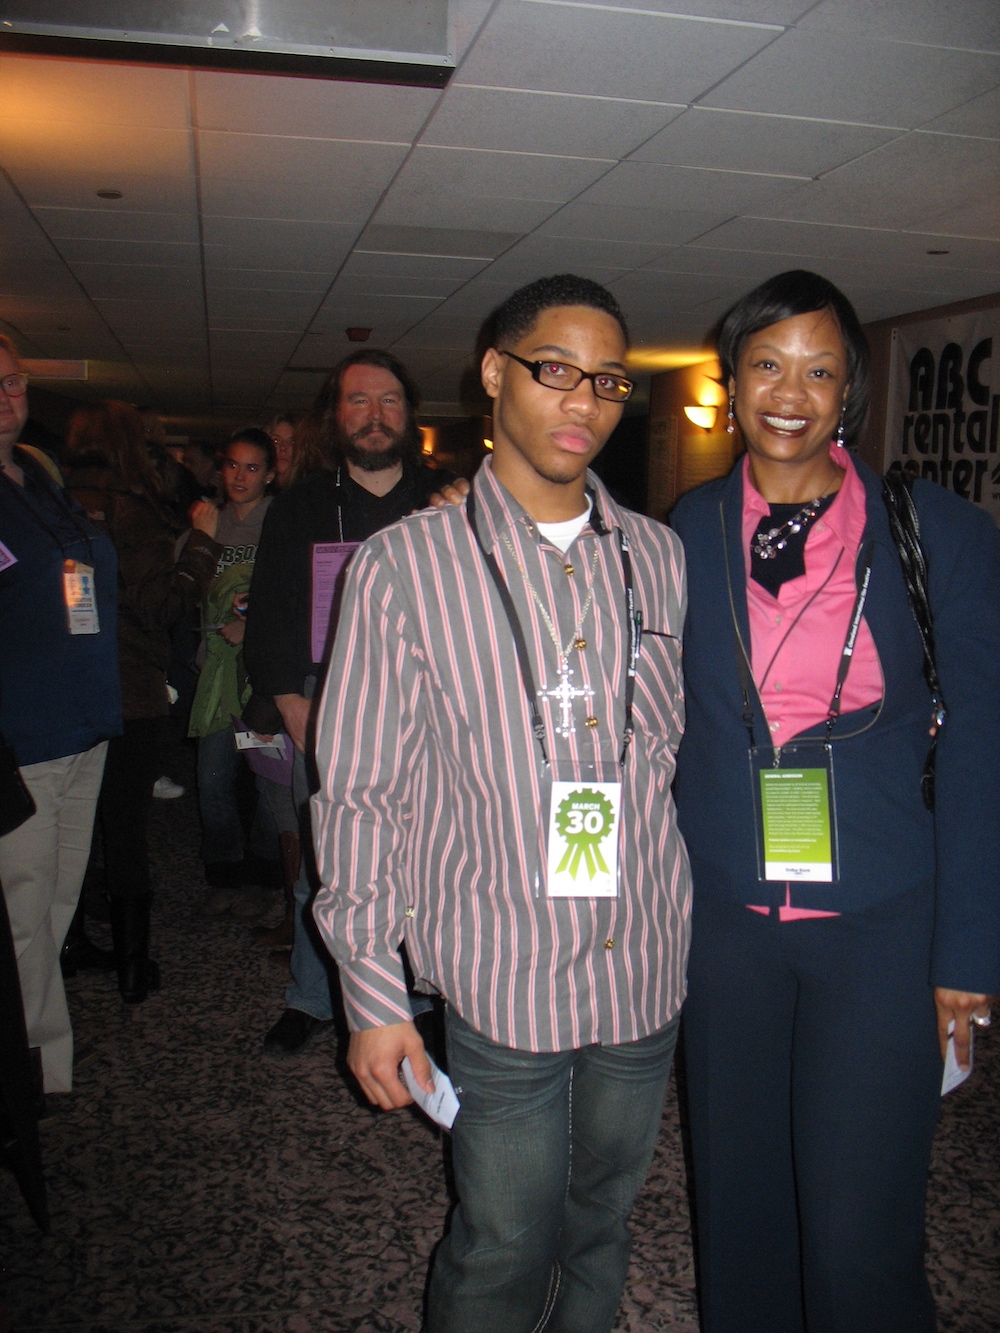 Tyree and Ms. Joyner - as the crowds line up